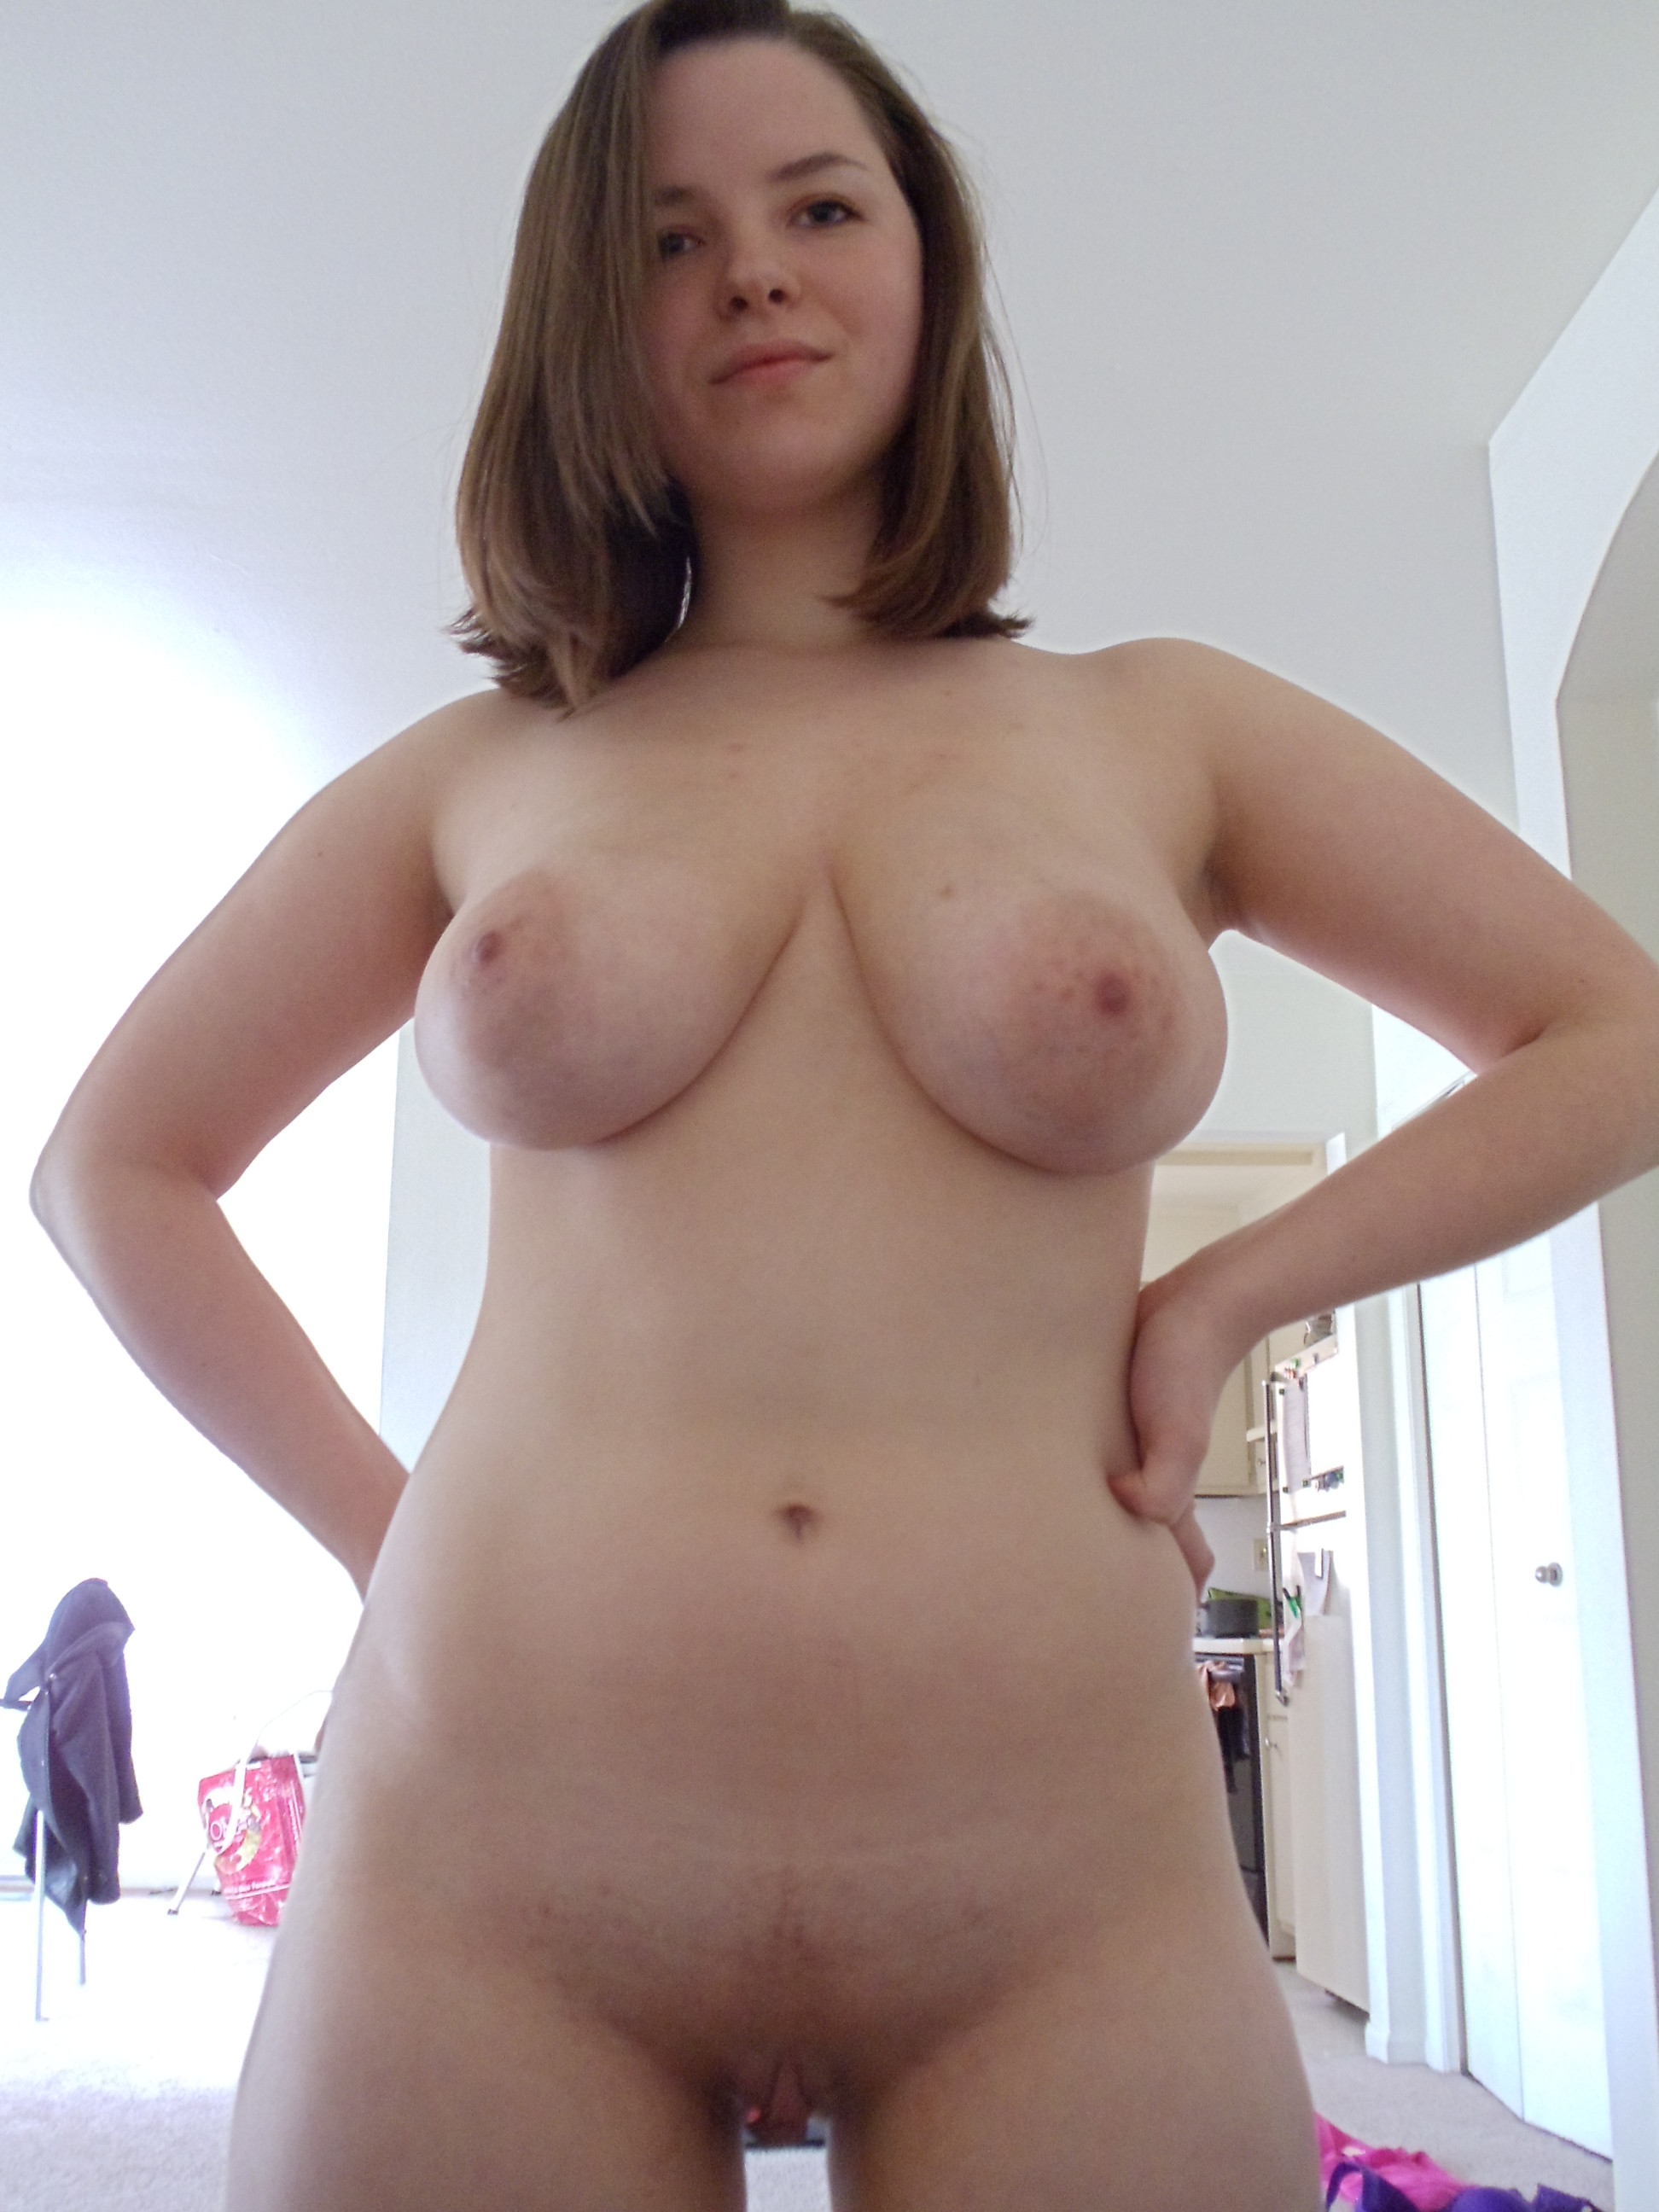 Big tits and wide hips nude pics